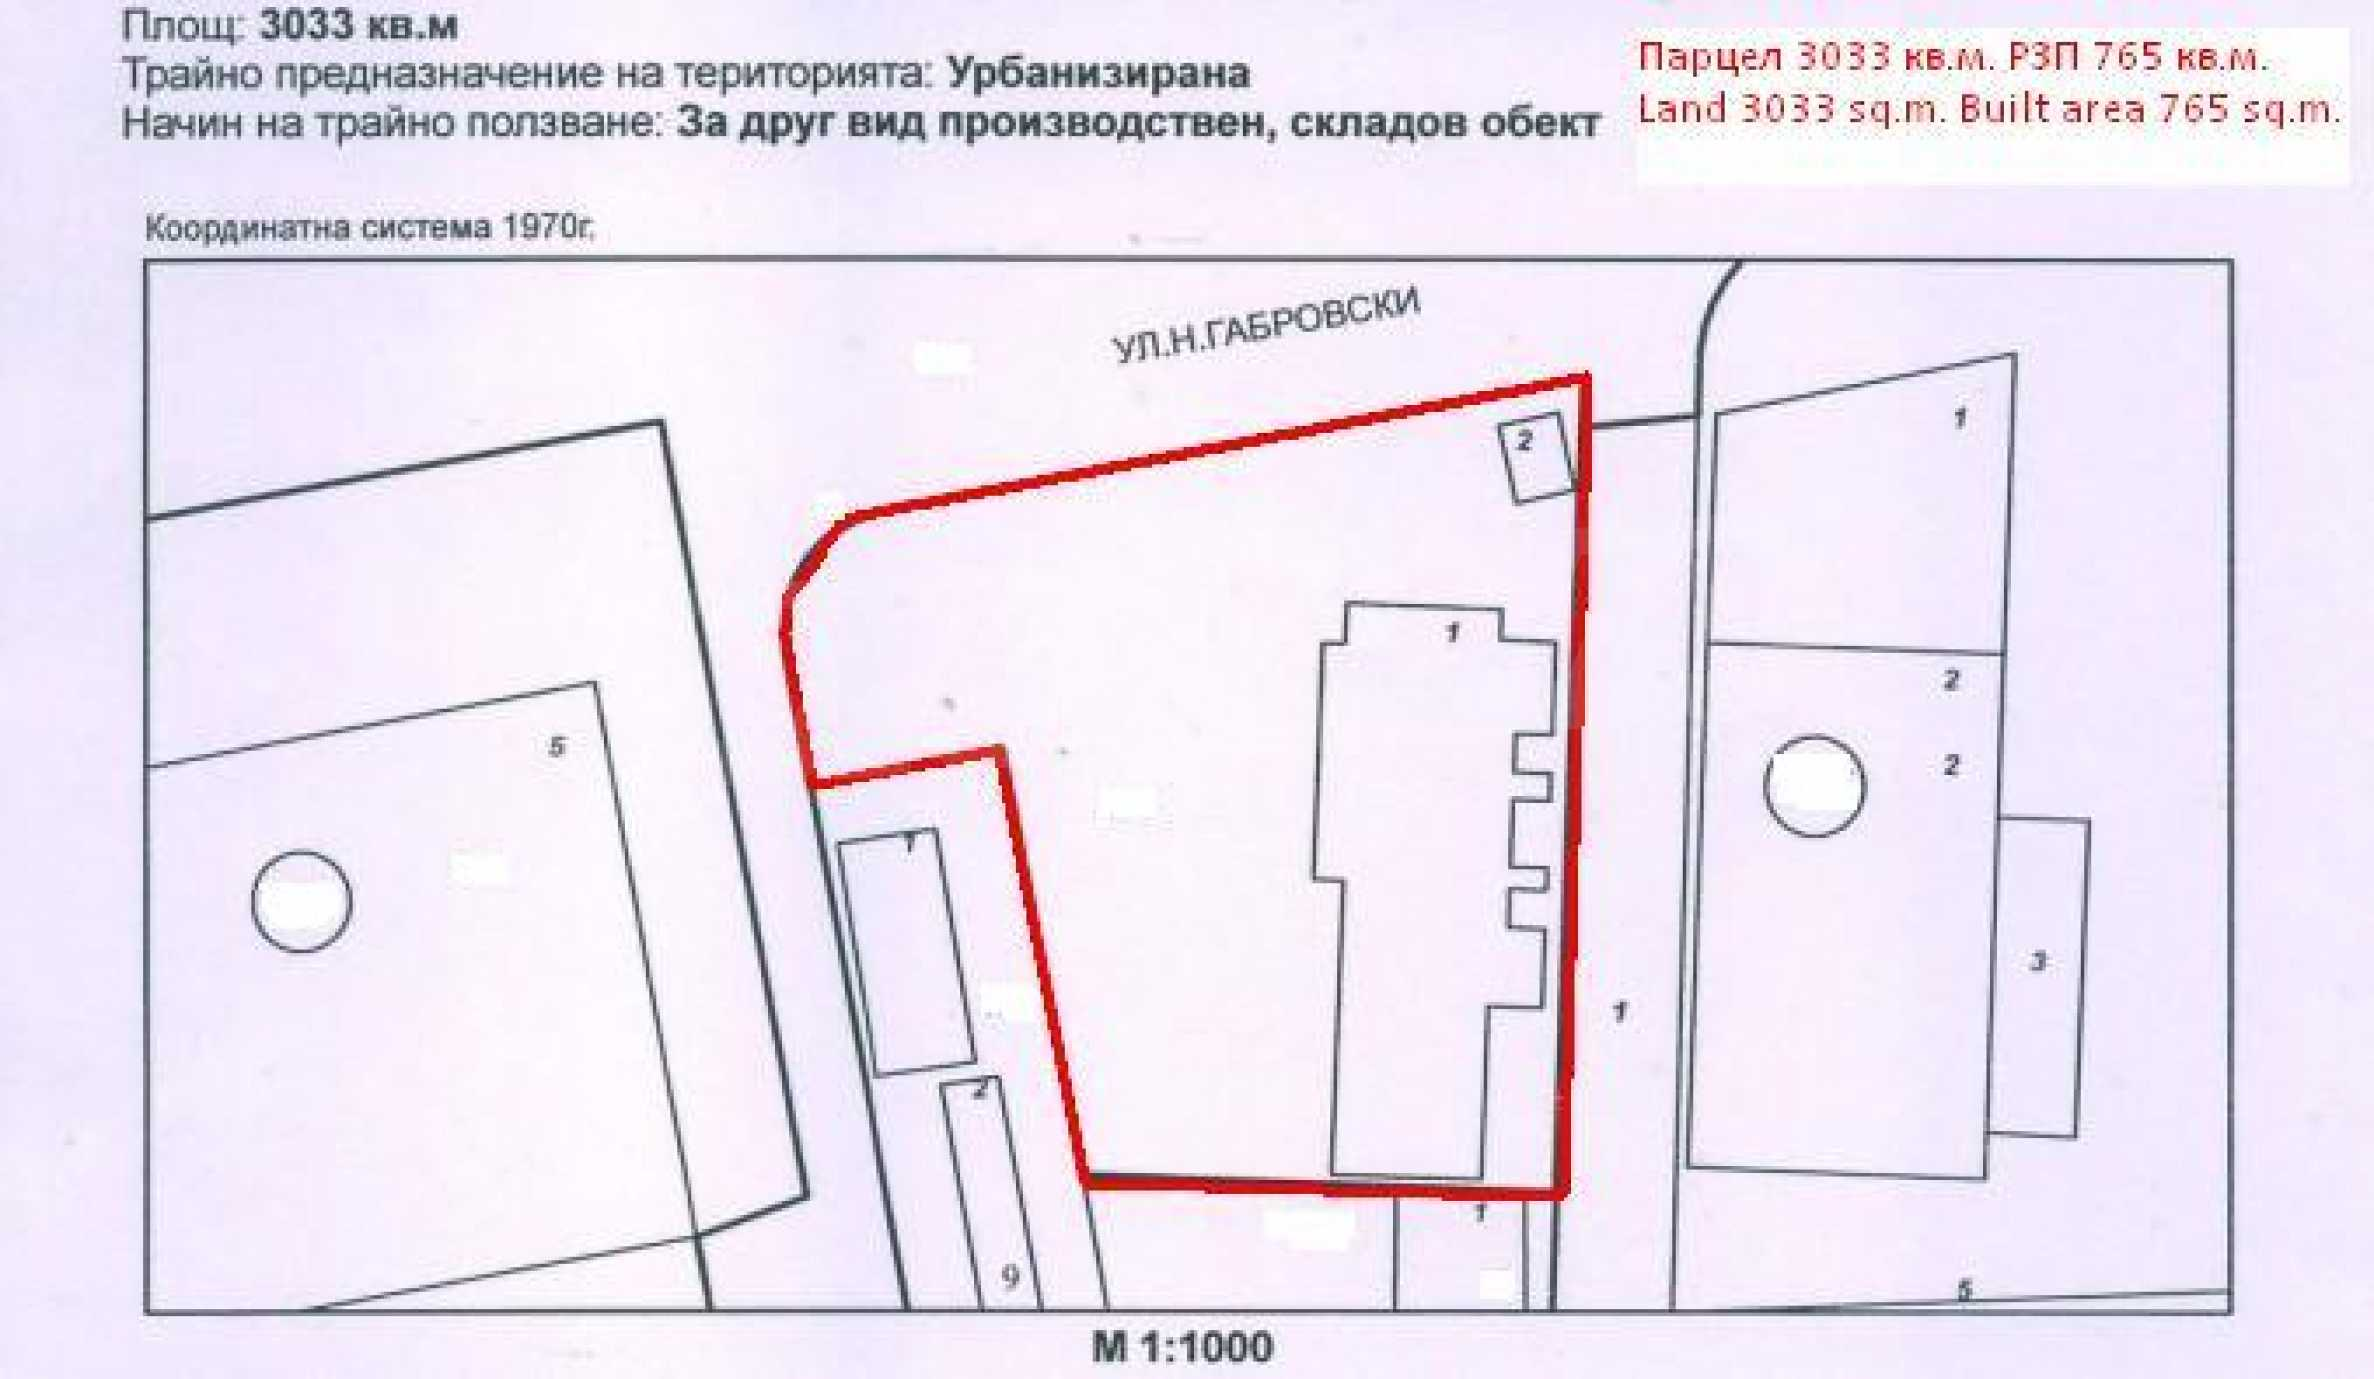 Land with a convenient location in the city of Veliko Tarnovo 9